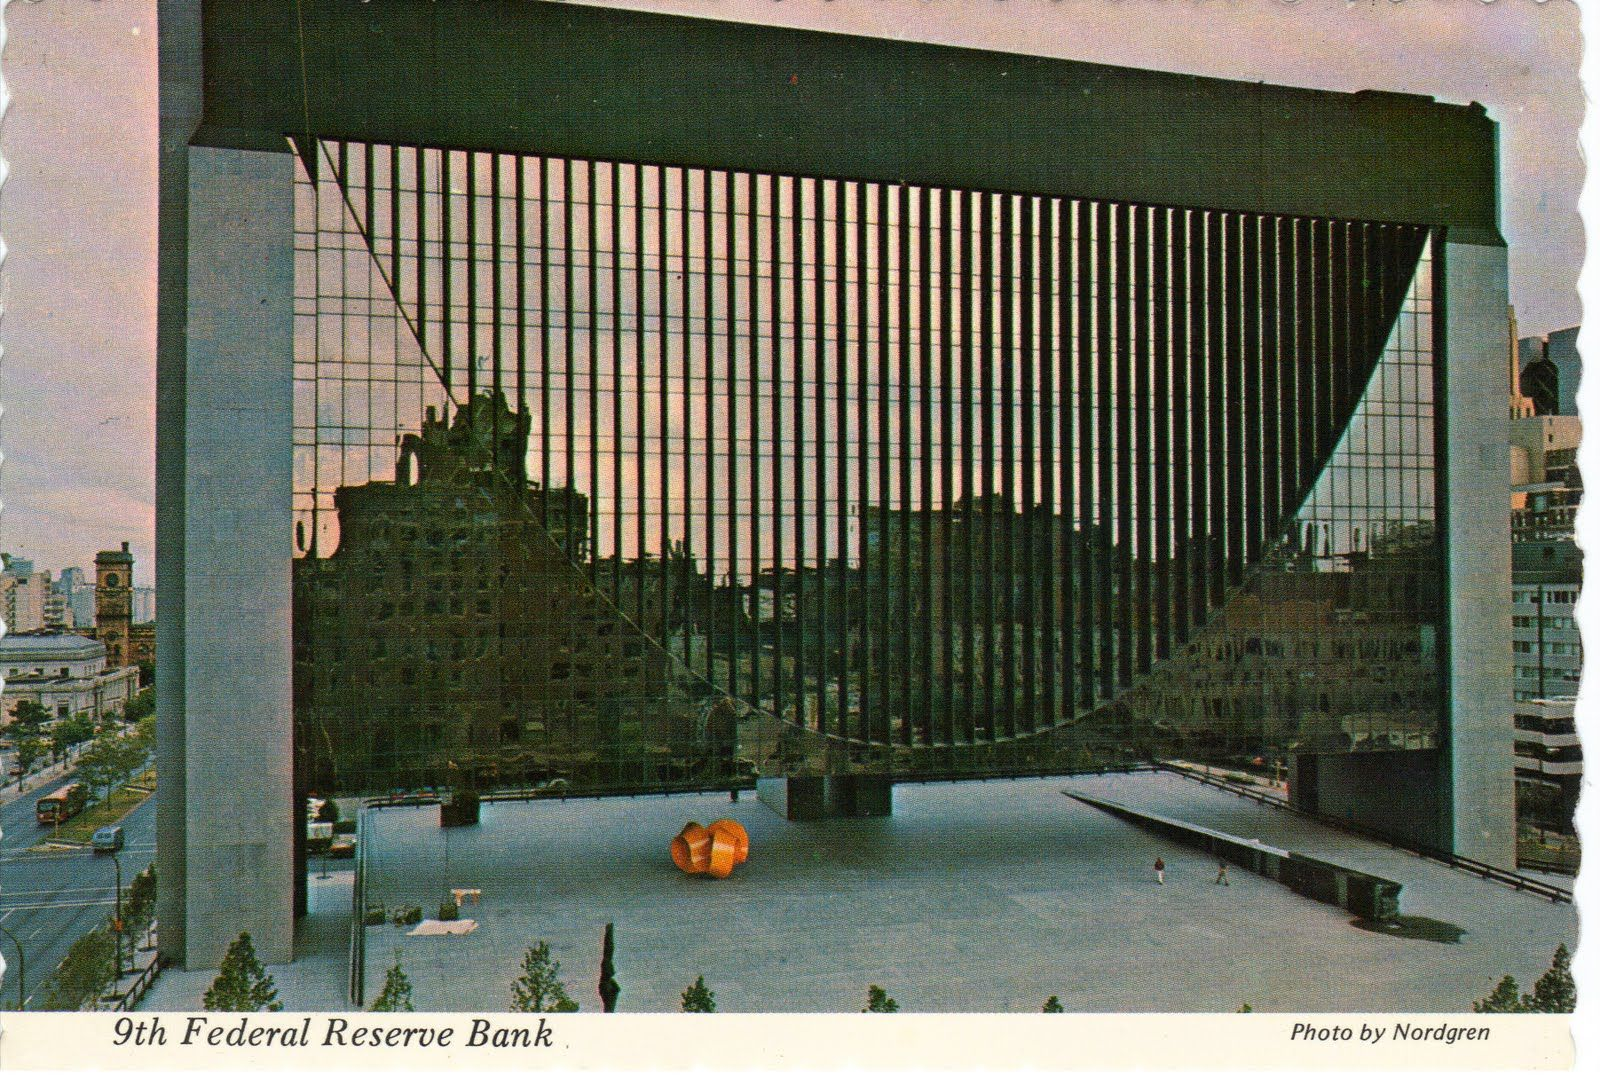 postales inventadas making up postcards federal reserve postales inventadas making up postcards 458 federal reserve bank minneapolis